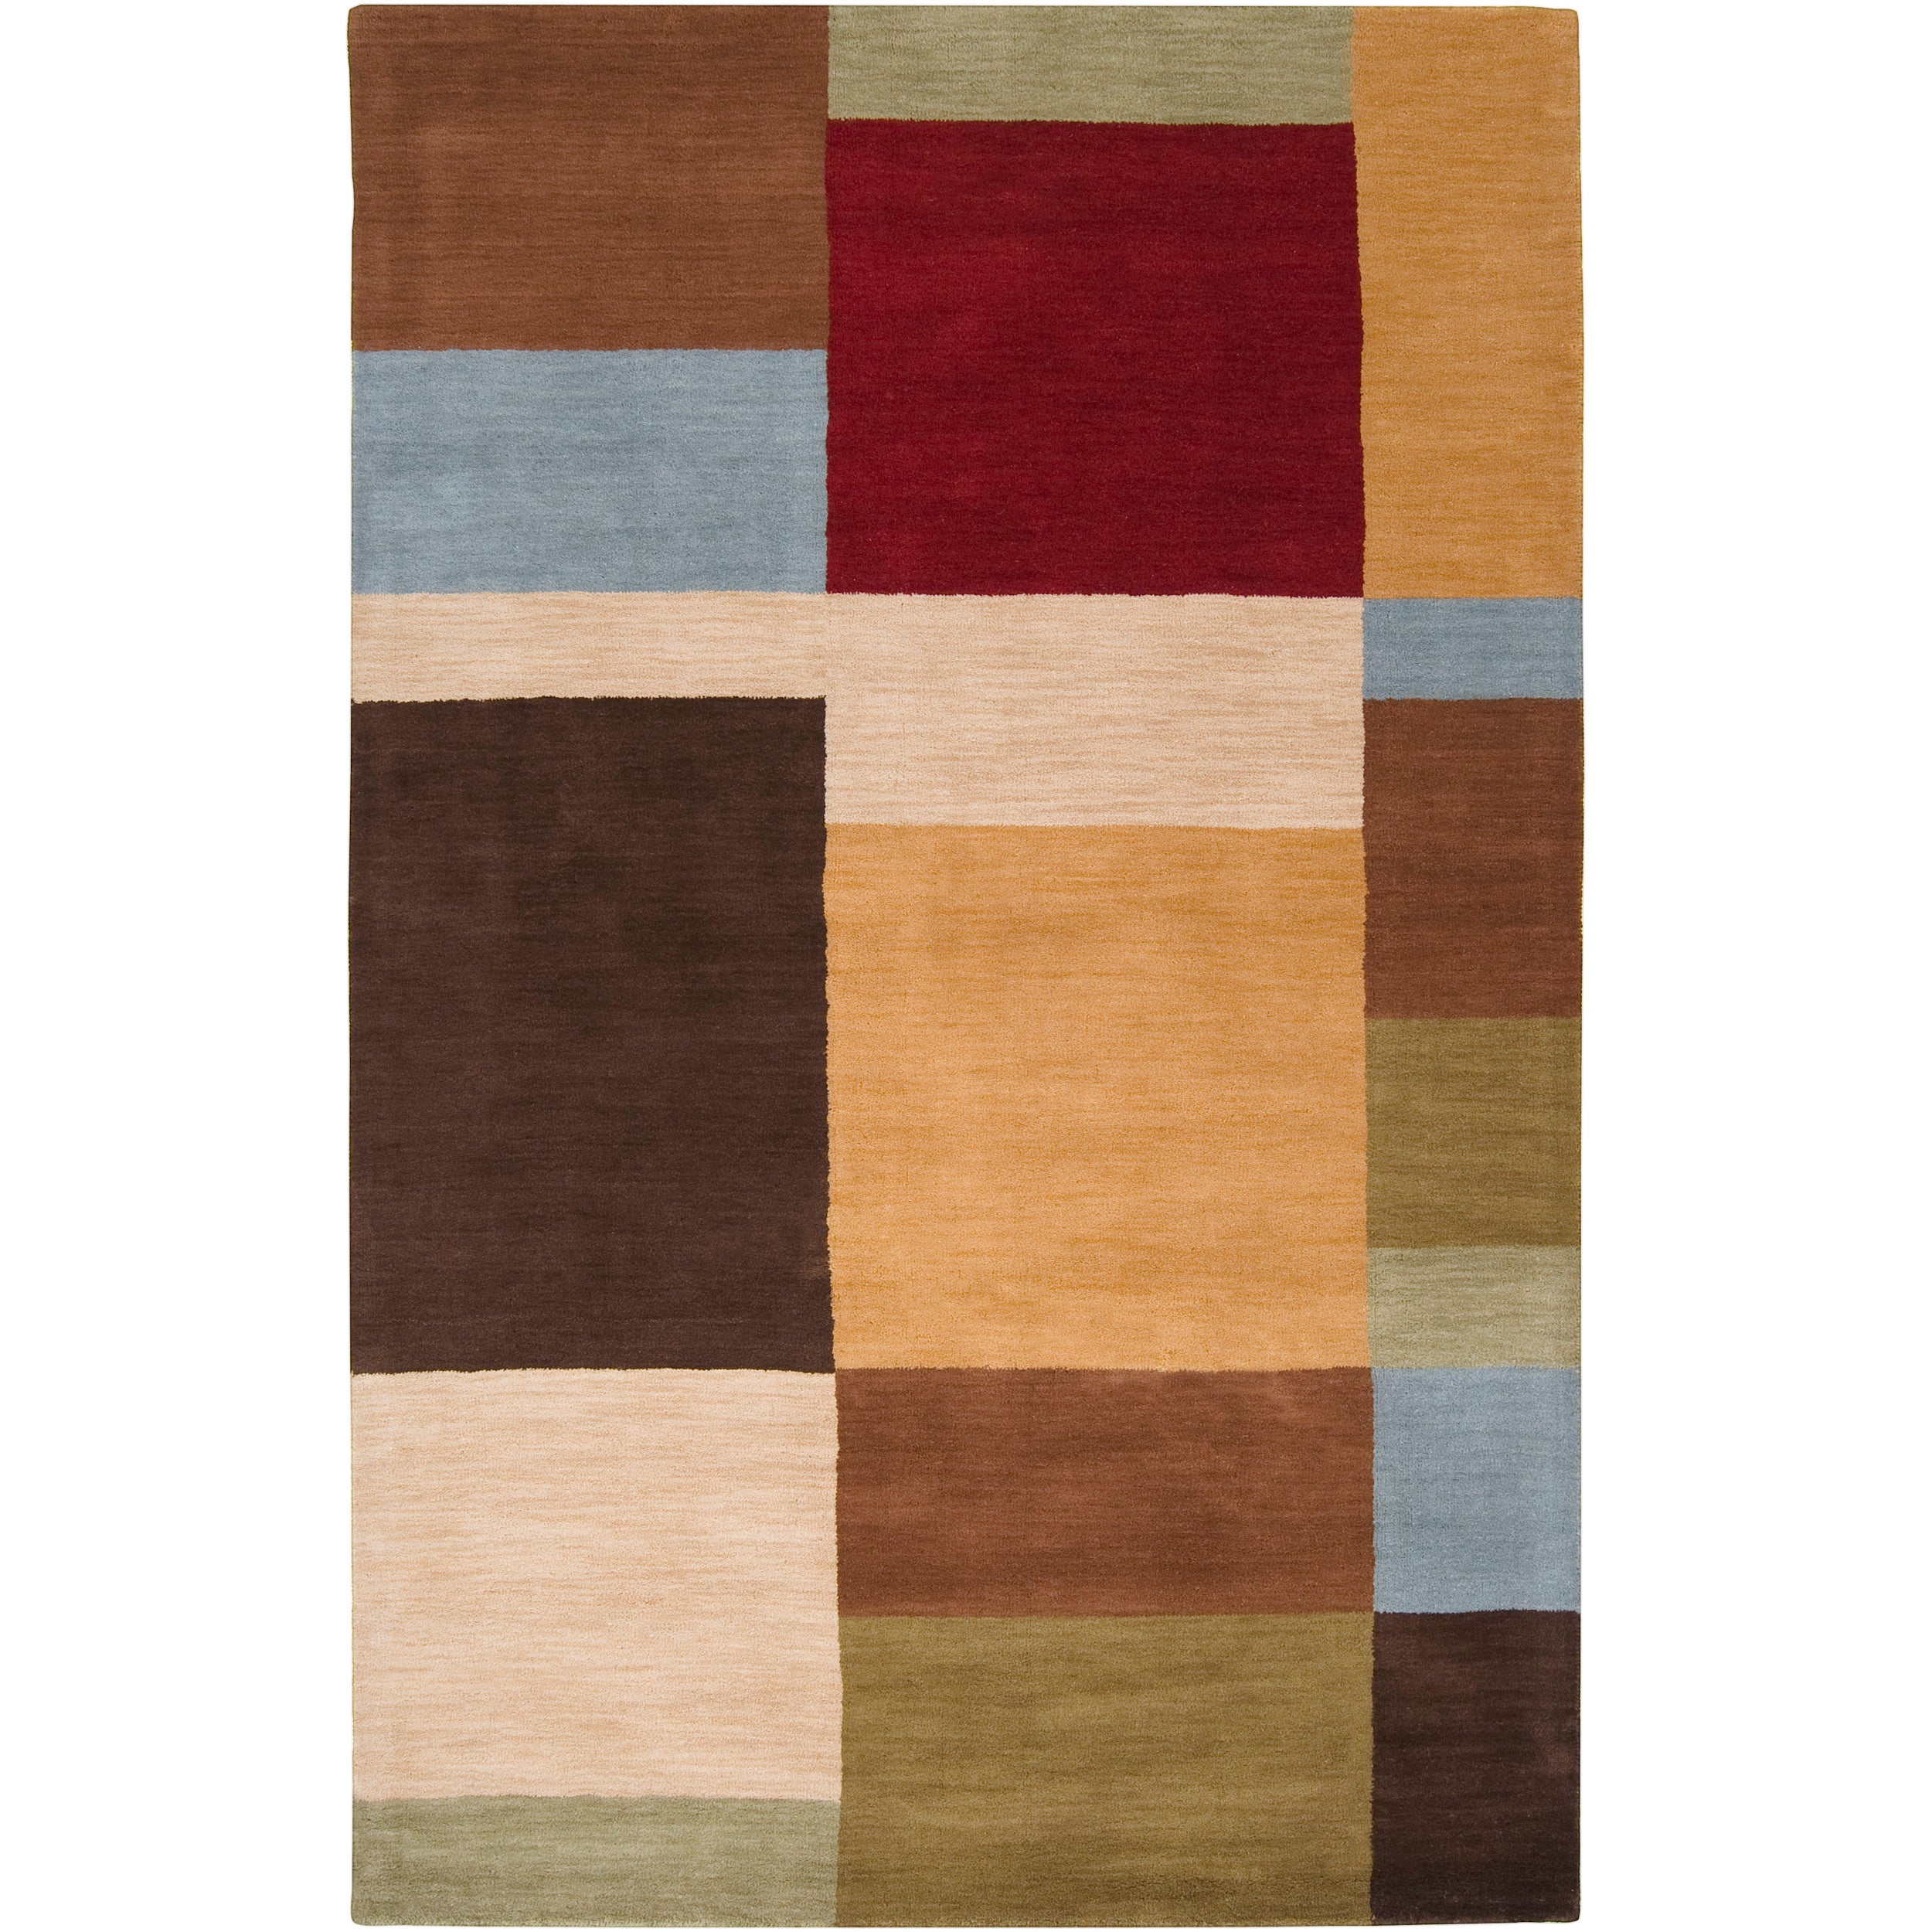 Hand-tufted Contemporary Multi Colored Squares Automaton Wool Geometric Rug (9' x 13')